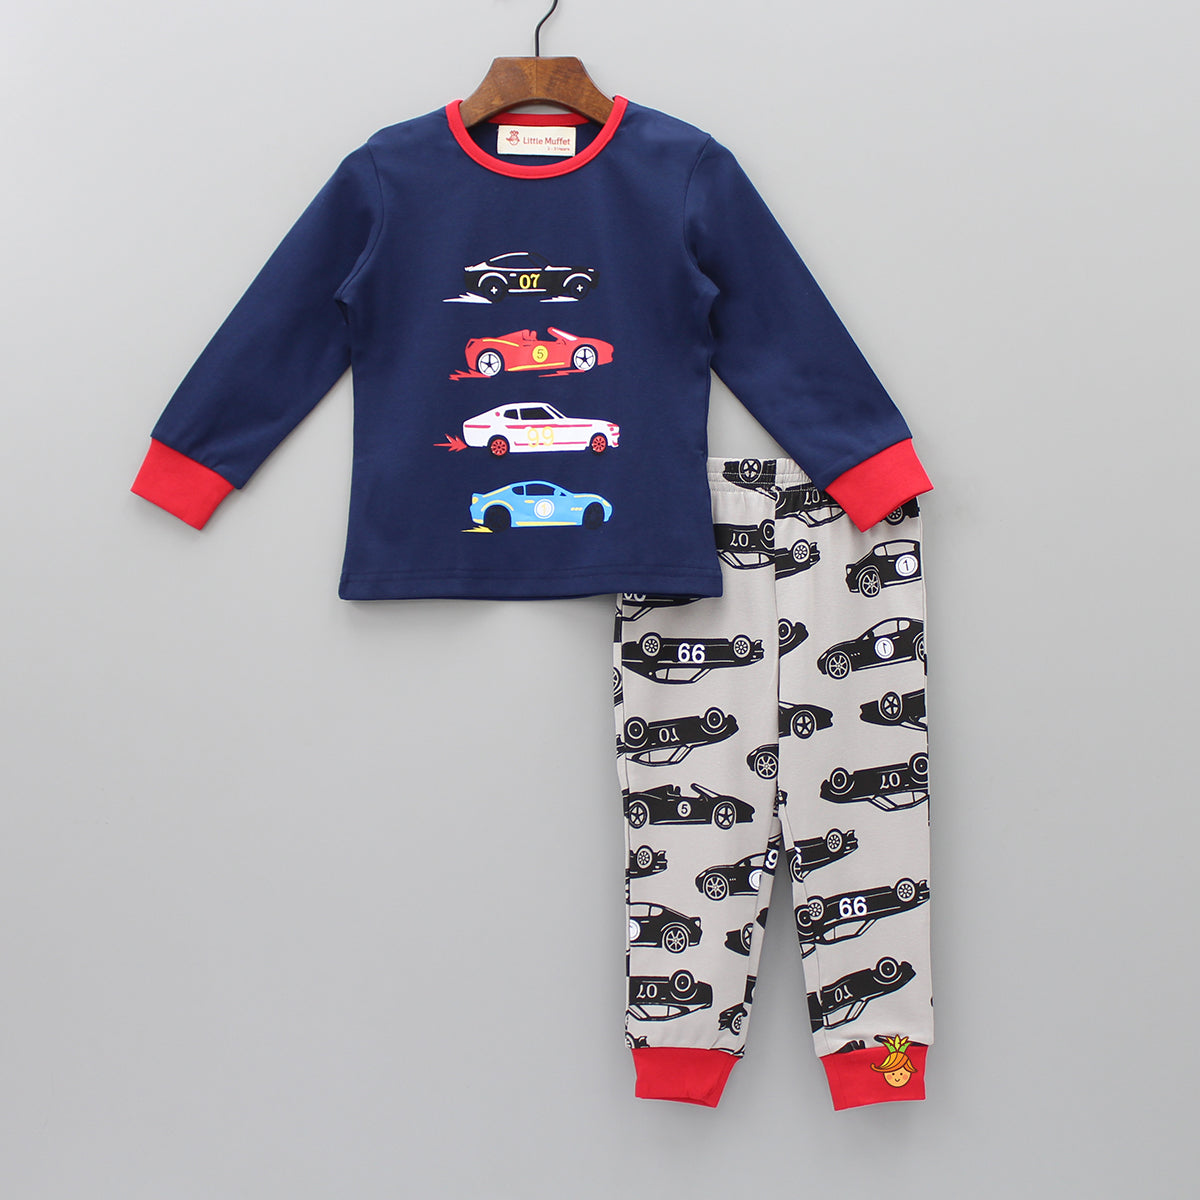 Speedy Car Sleepwear